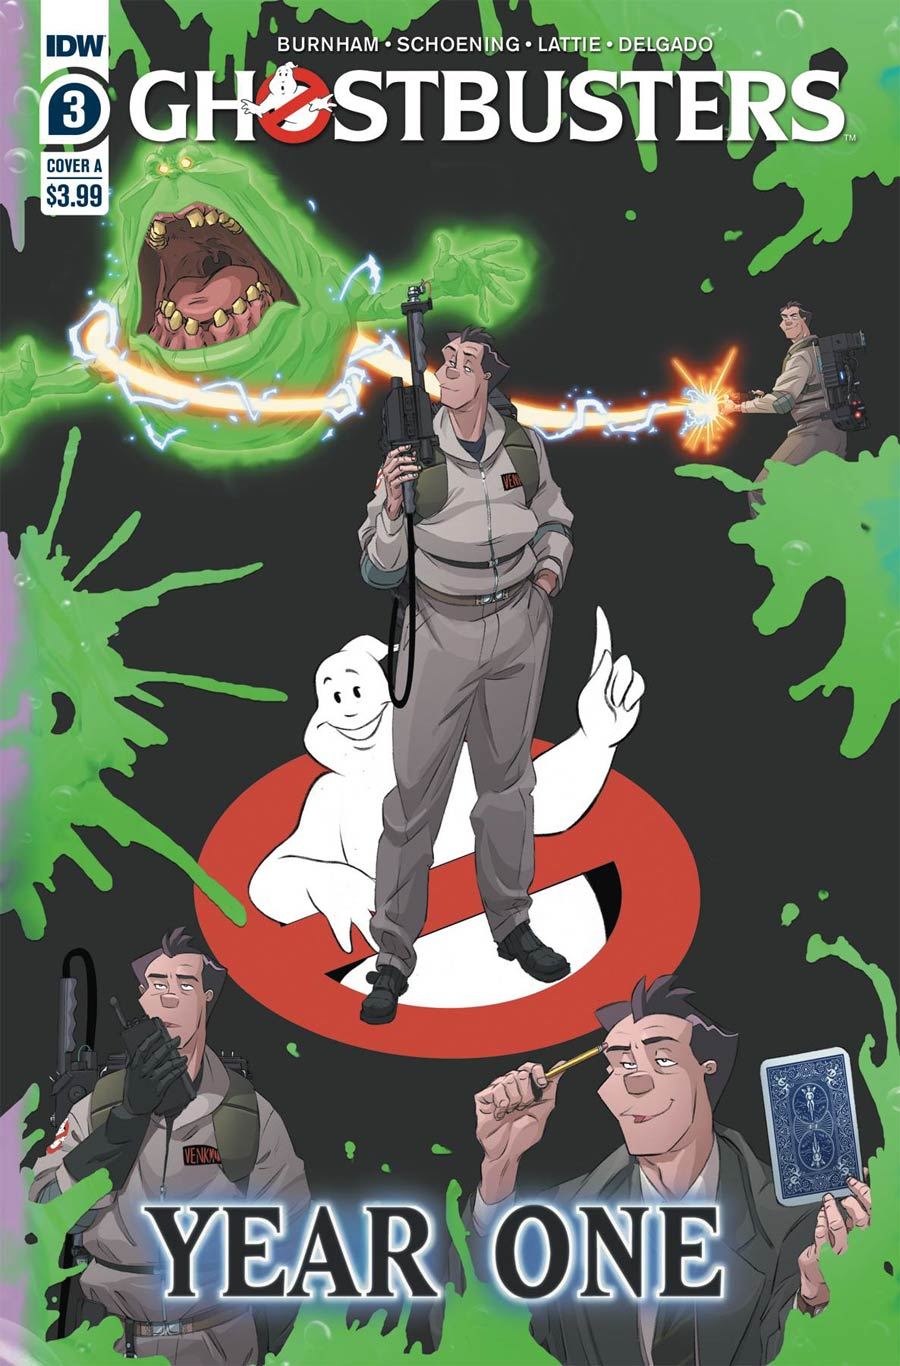 Ghostbusters Year One #3 Cover A Regular Dan Schoening Cover